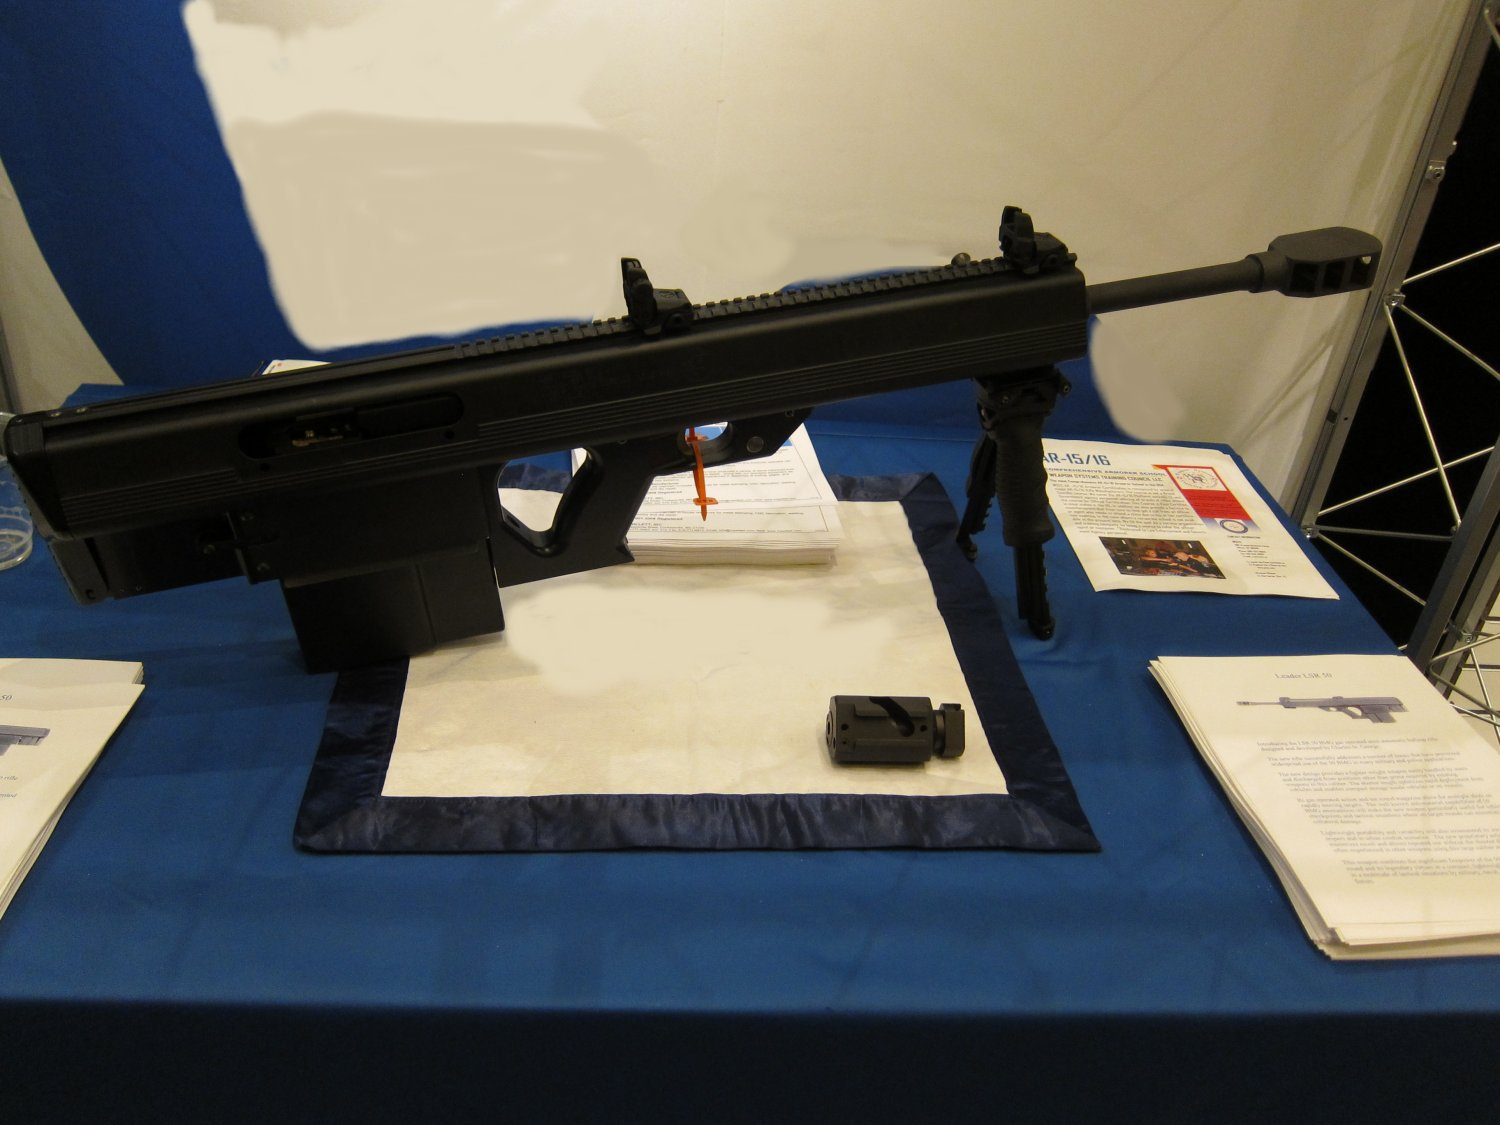 Leader 50 BMG Semi Auto Bullpup .50 BMG Anti Materiel Sniper Rifle at SHOT Show 2011 2 <!  :en  >Leader 50 BMG Revolutionary Ultra Compact and Lightweight Semi Auto Bullpup .50 BMG (12.7x99mm NATO) Anti Materiel/Sniper Rifle for Military Special Operations Forces (SOF) and Civilian Tactical Shooters: Coming Soon to a Theater of Operations and Shooting Range Near You? <!  :  >